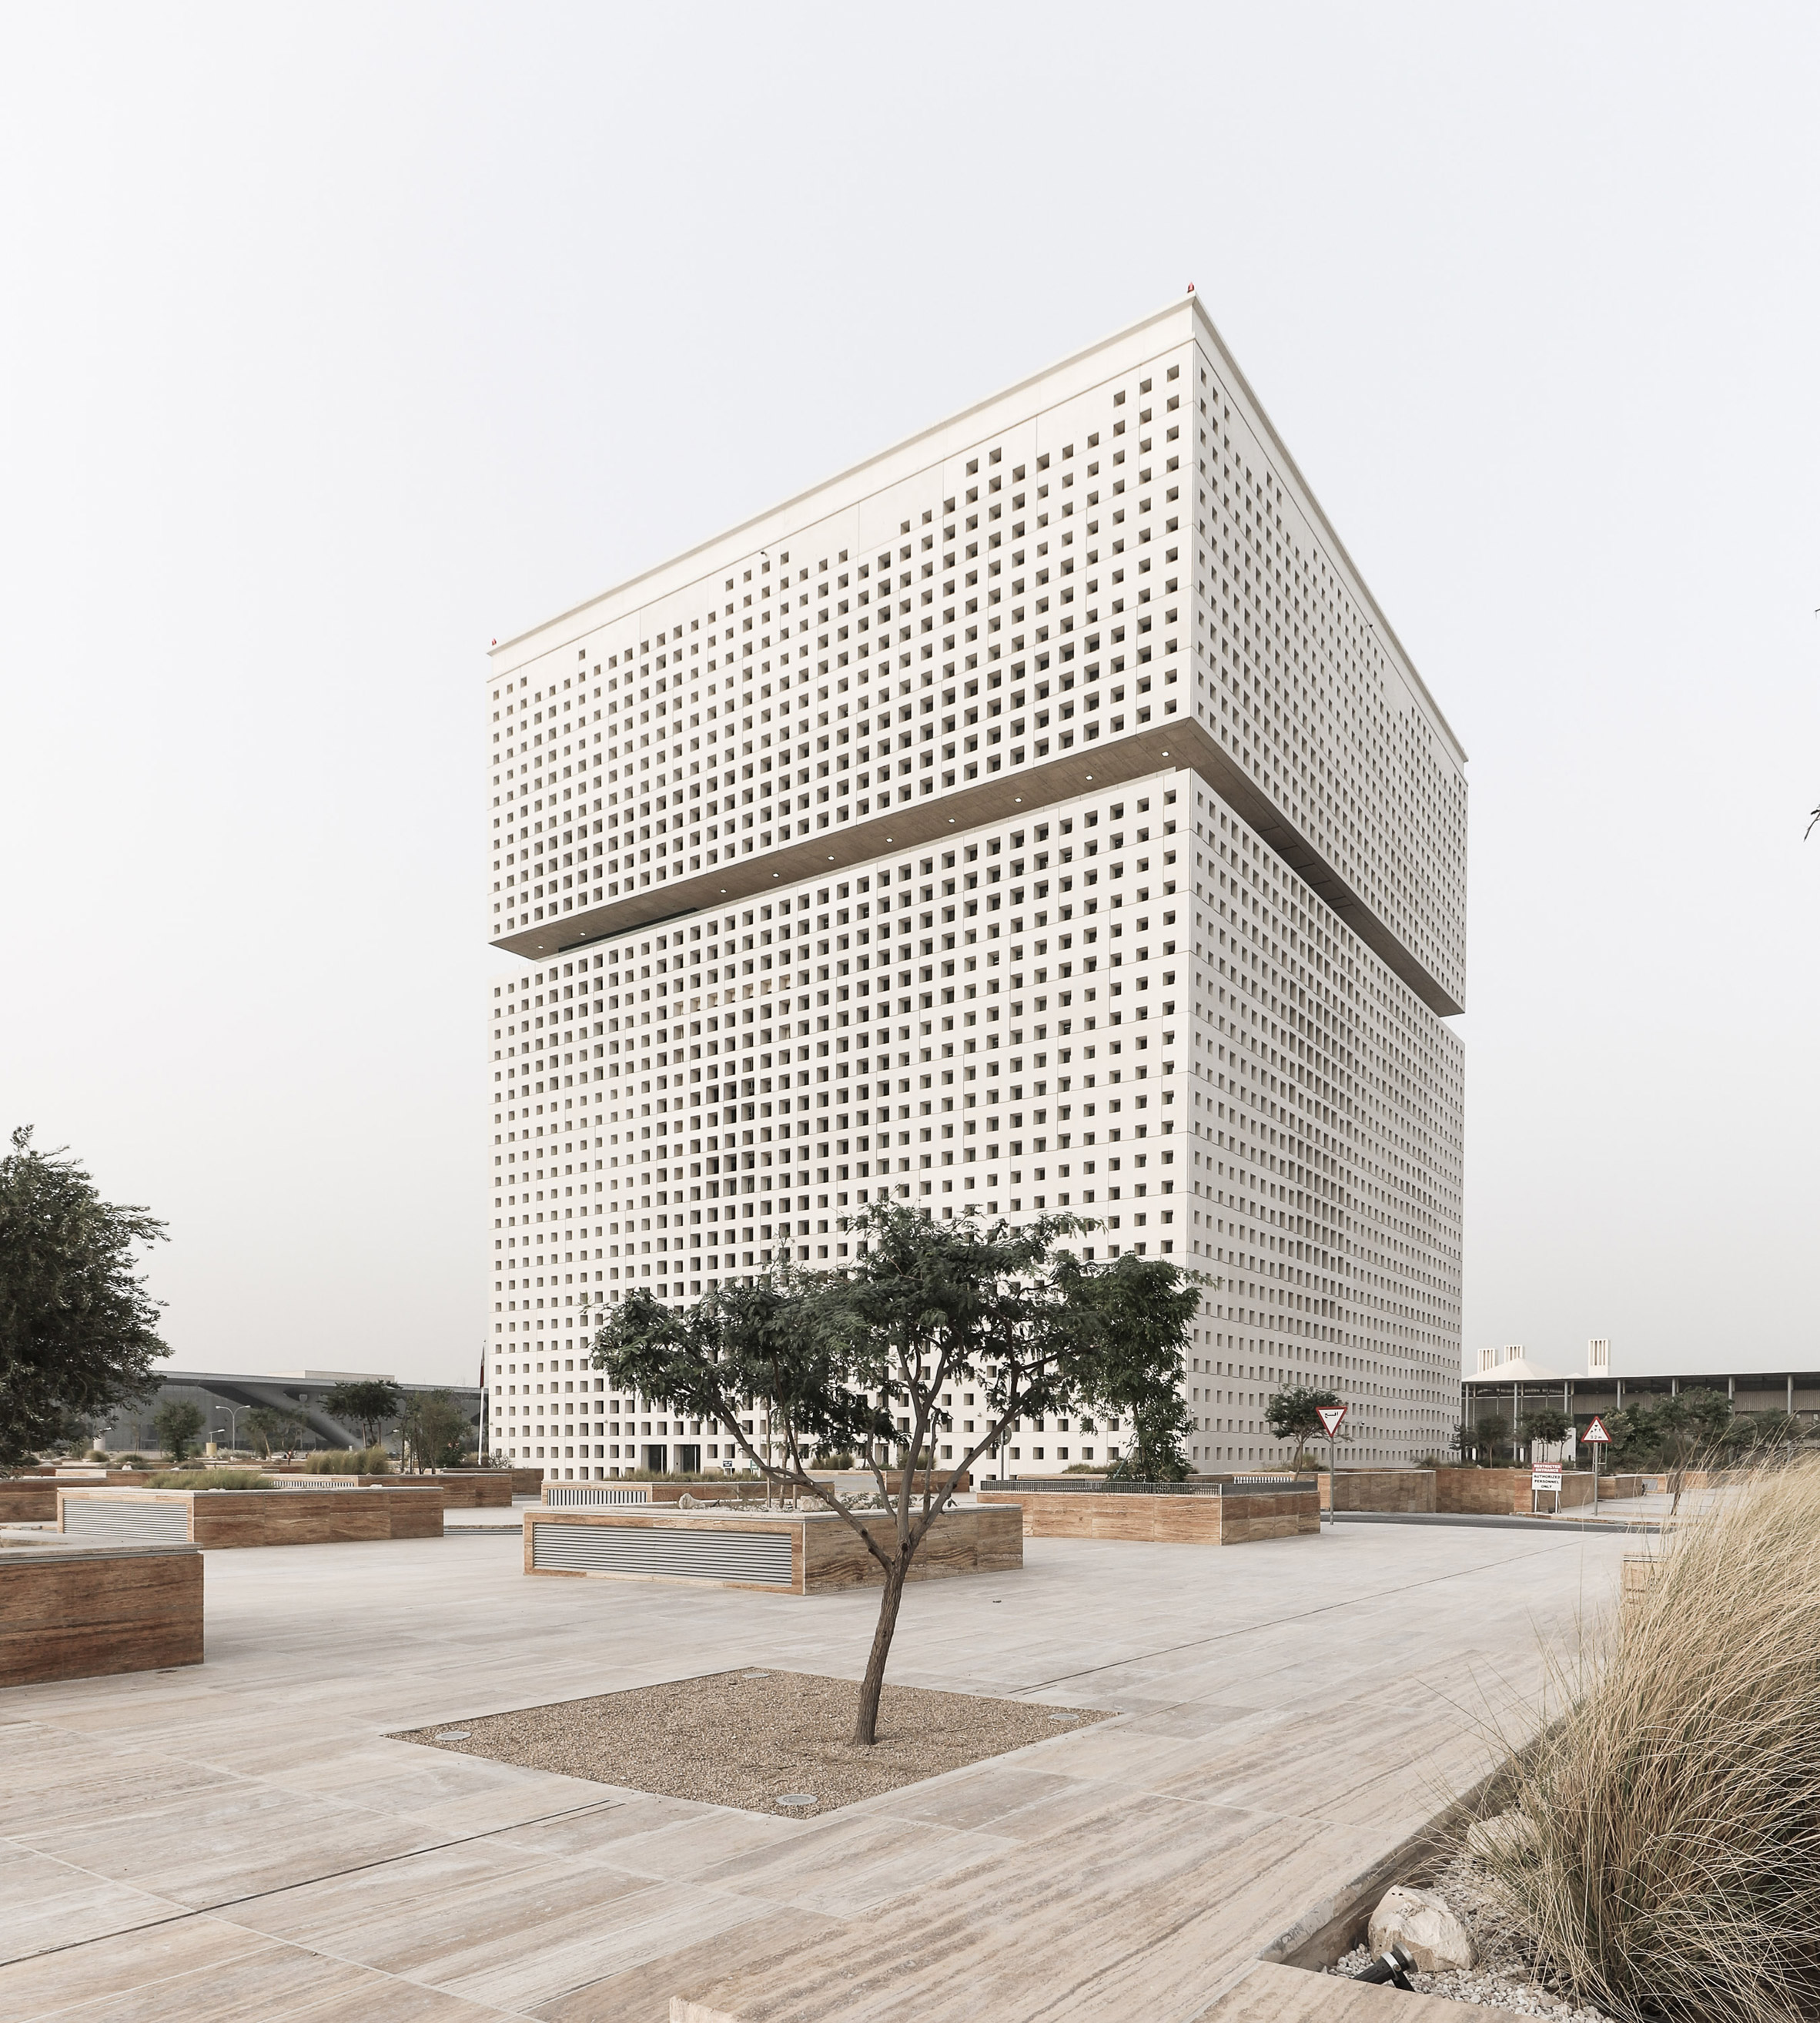 Oma designed qatar foundation unveiled in new photos curbed for Architecture qatar